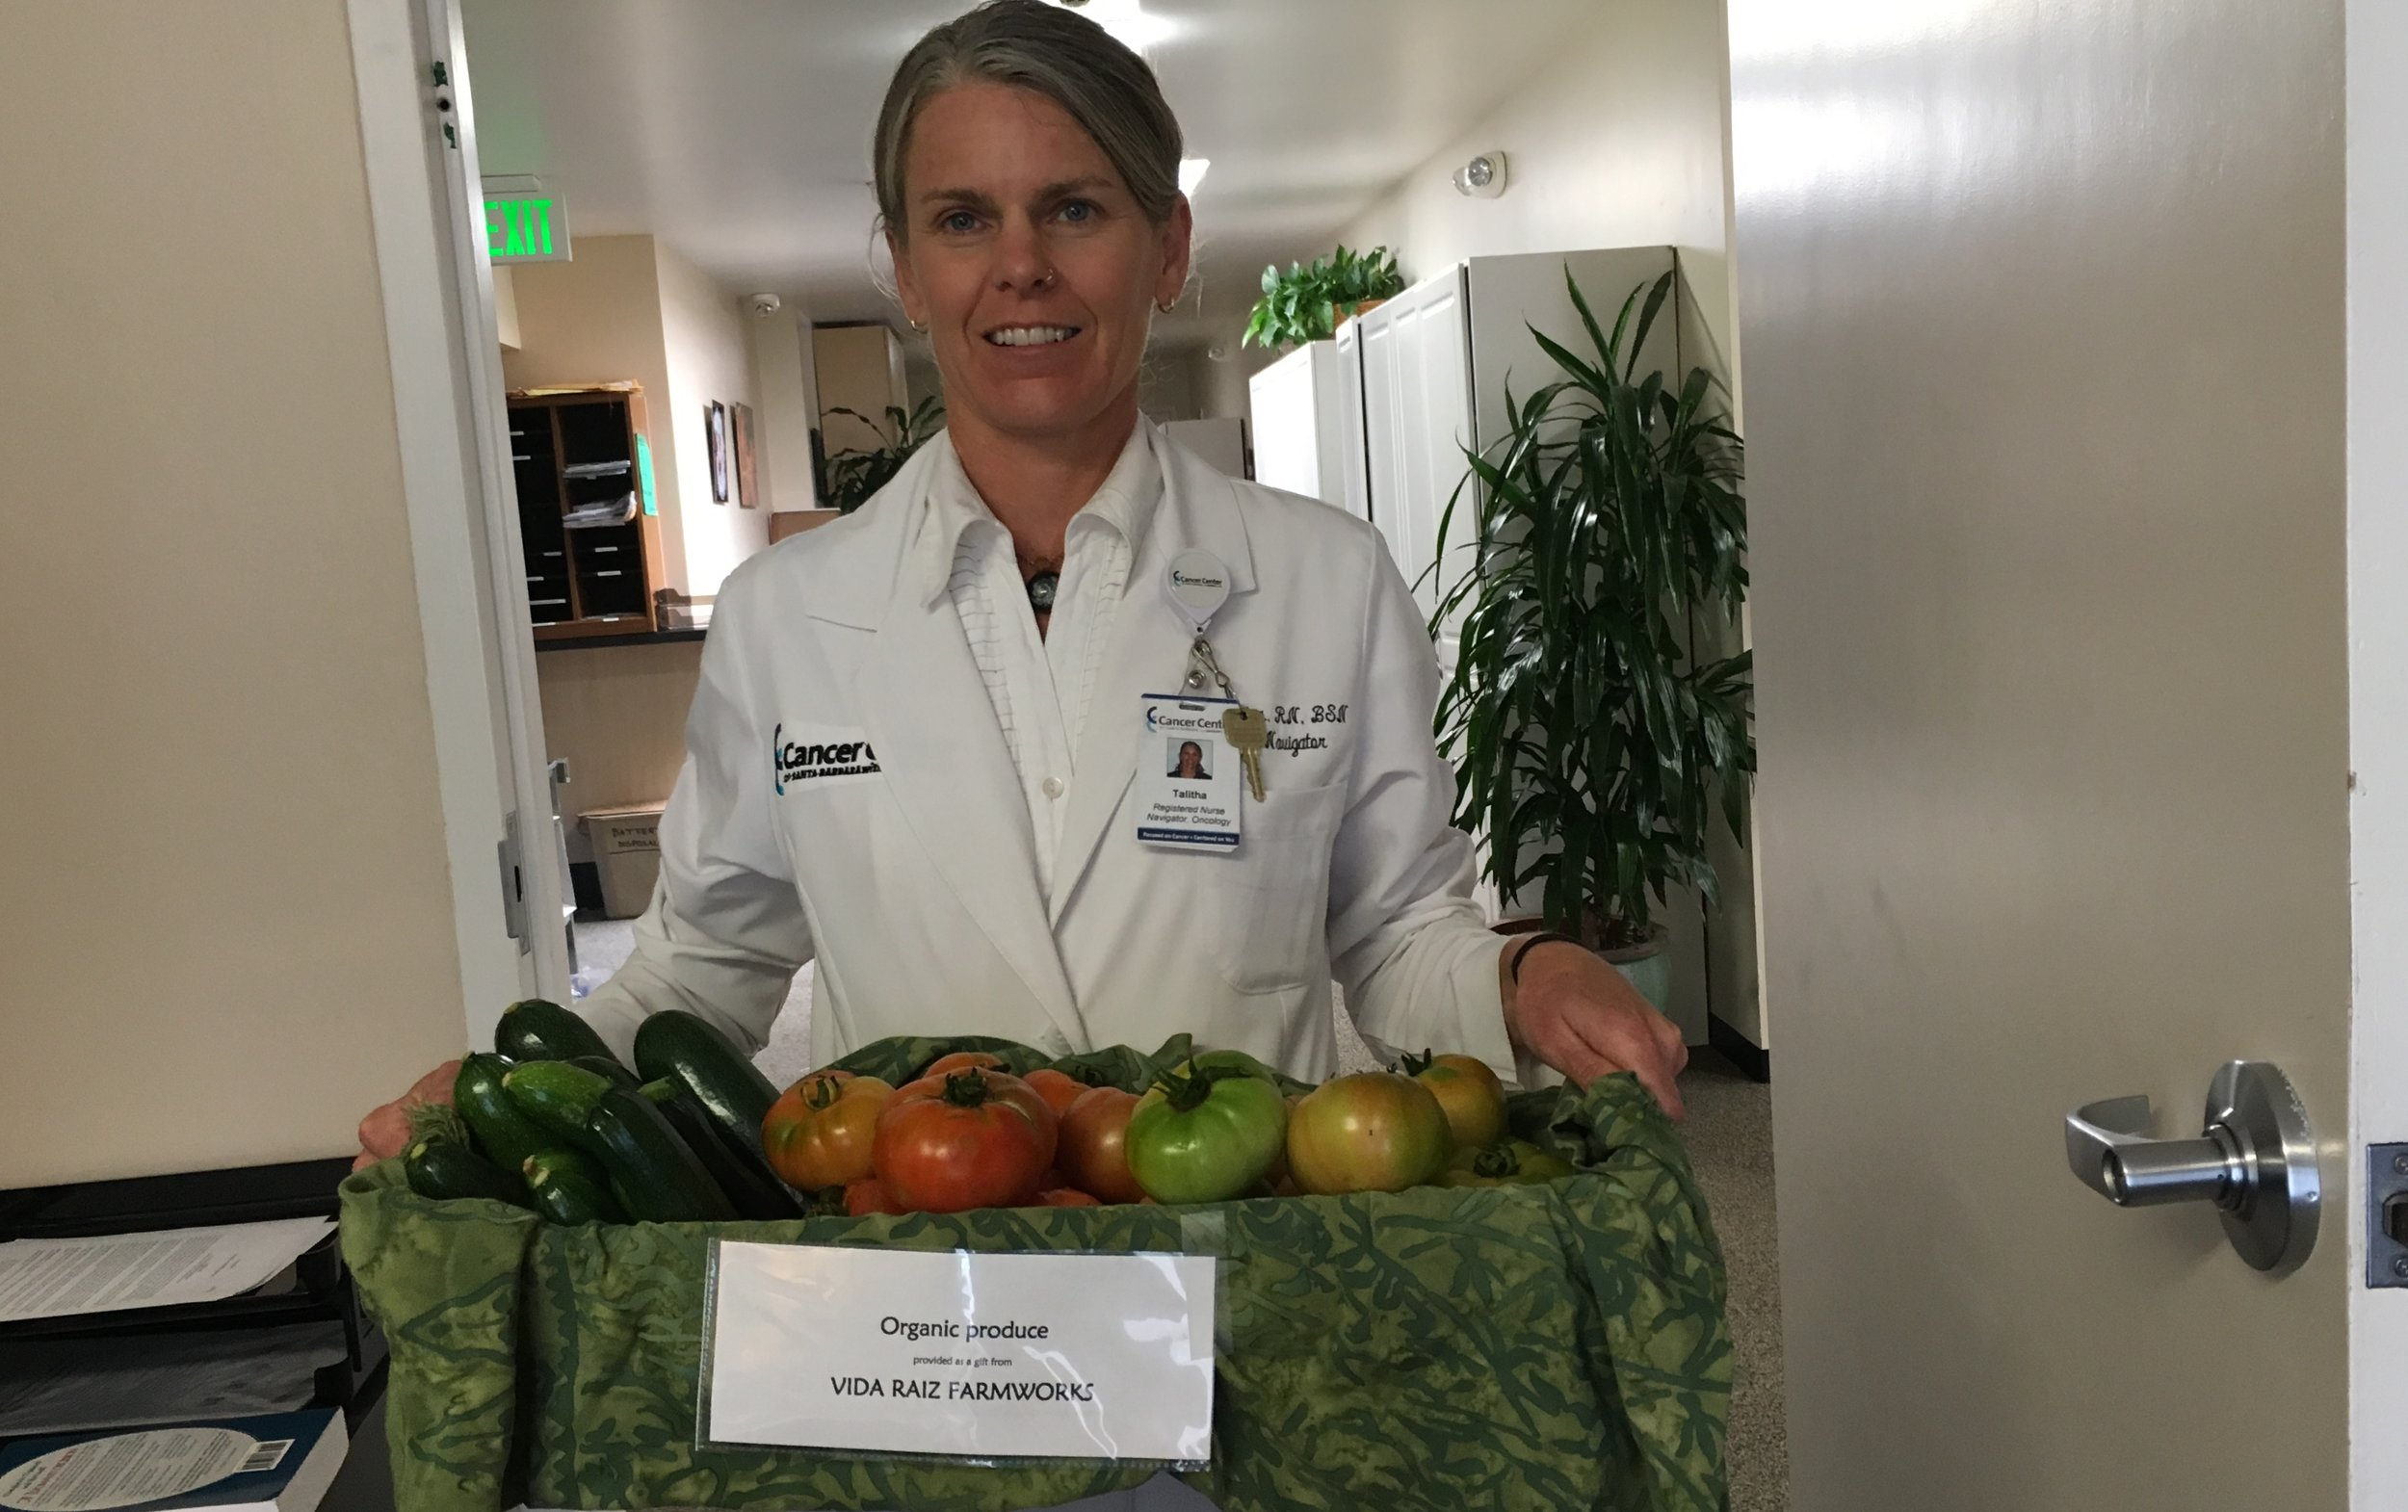 Talitha with Cucumbers & Heirloom Tomatoes donated to the Cancer Center.